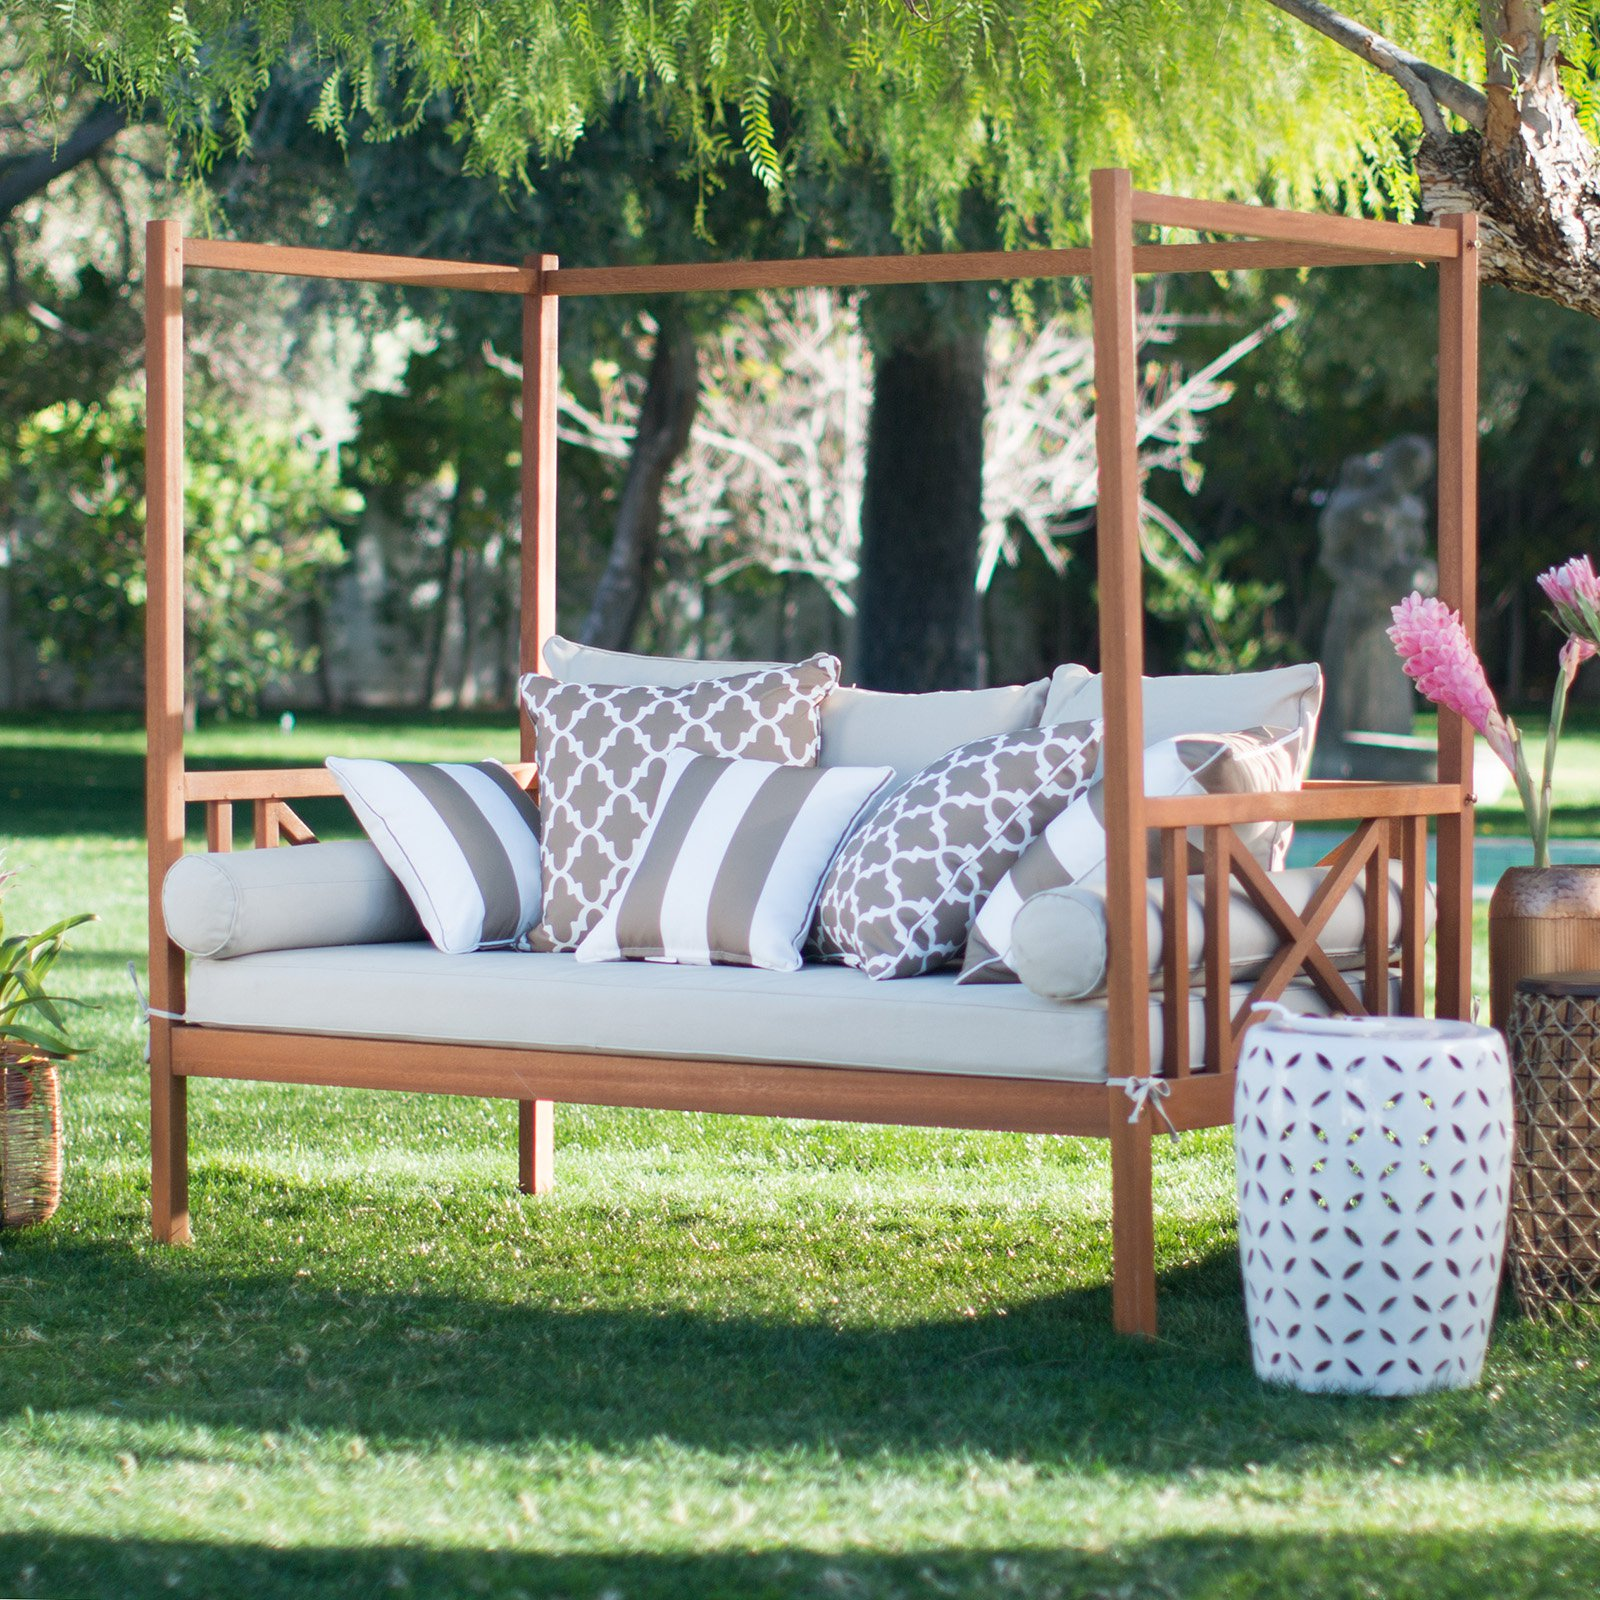 The benefits of outdoor day beds